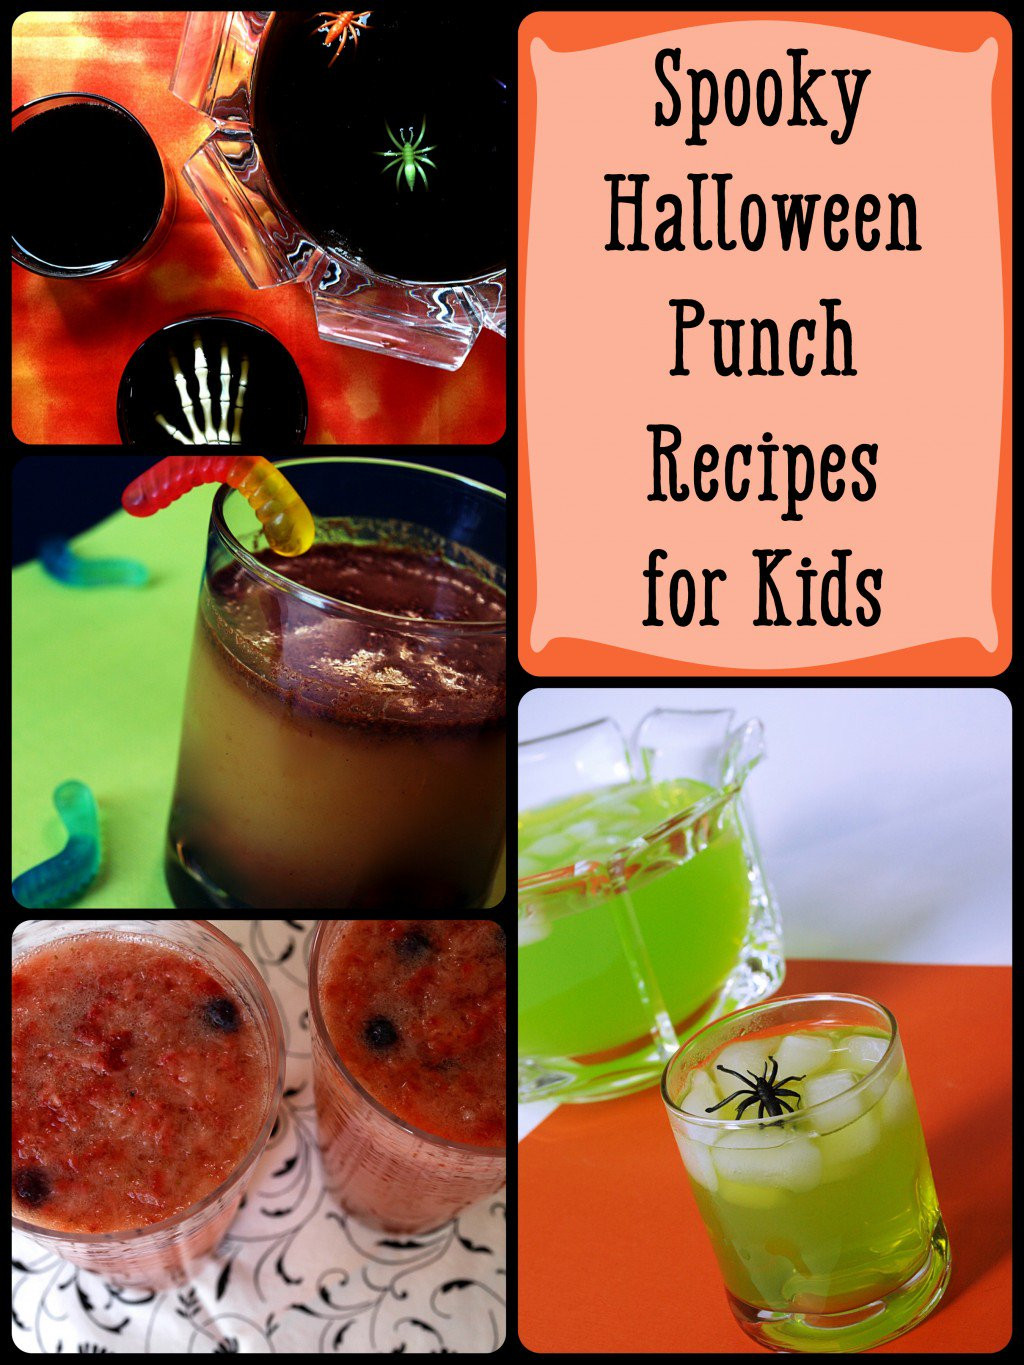 Halloween Drinks For Kids  5 Spooky Halloween Punch Recipes and Drink Ideas for Kids